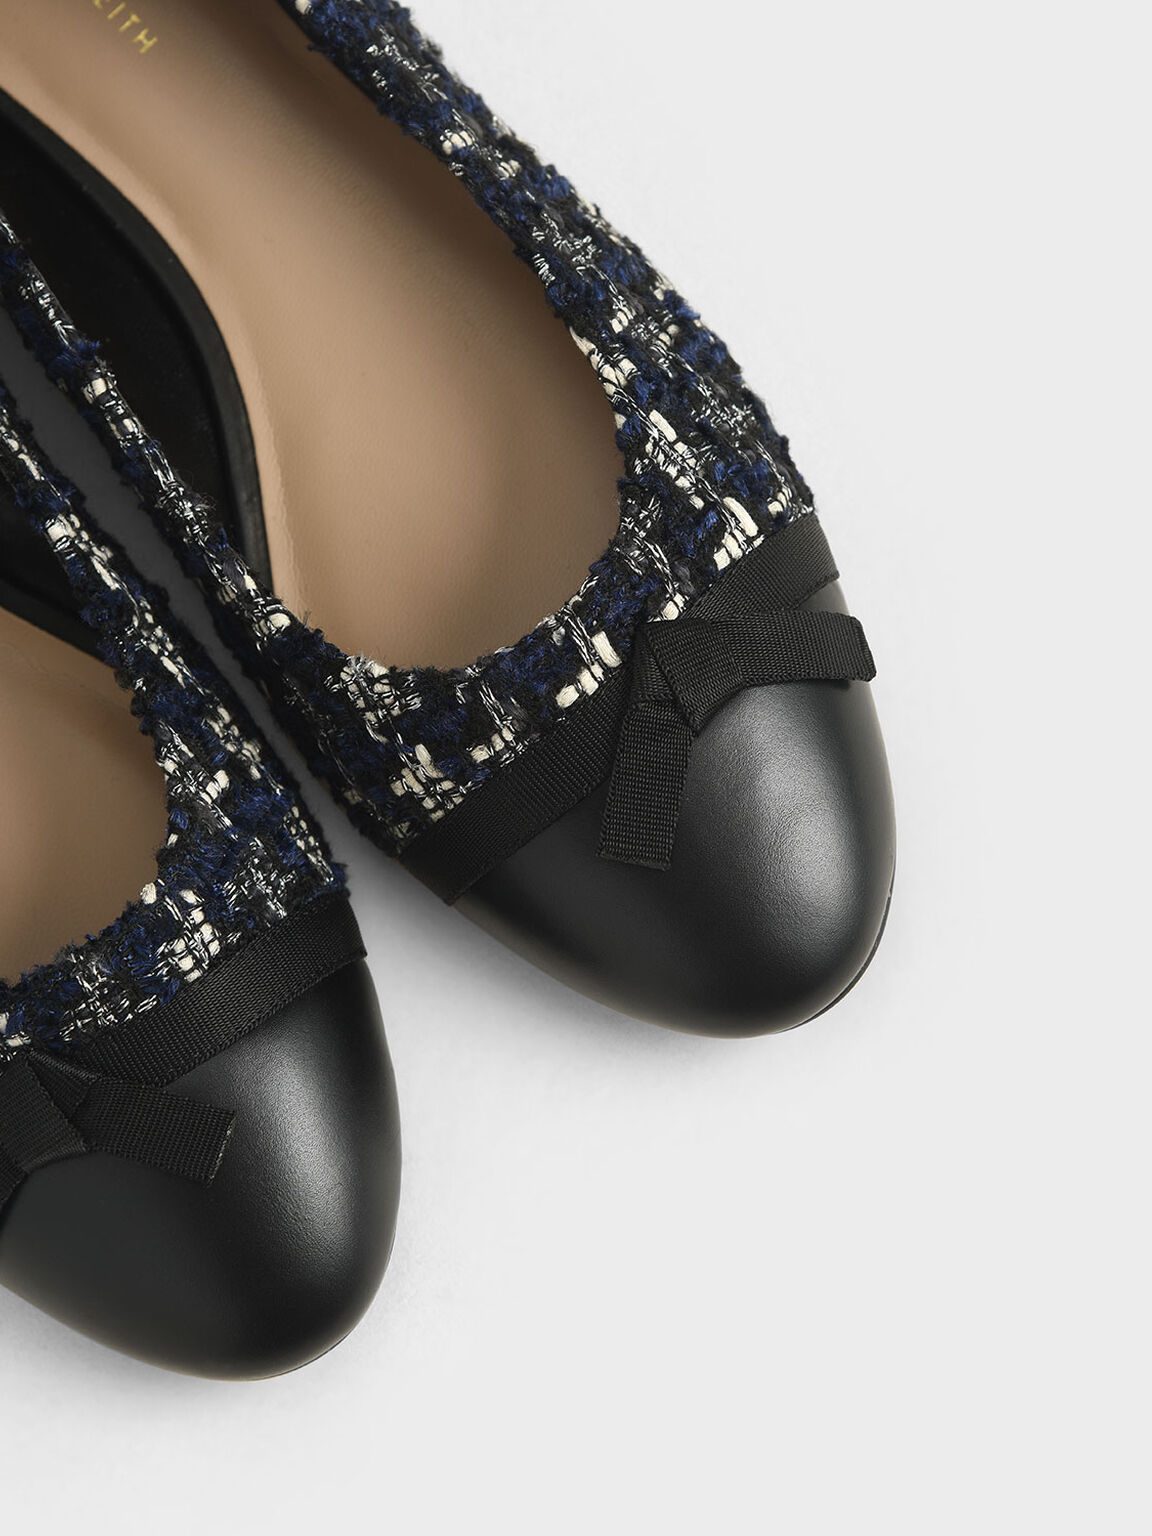 Tweed Ribbon Tie Ballet Pumps, Dark Blue, hi-res